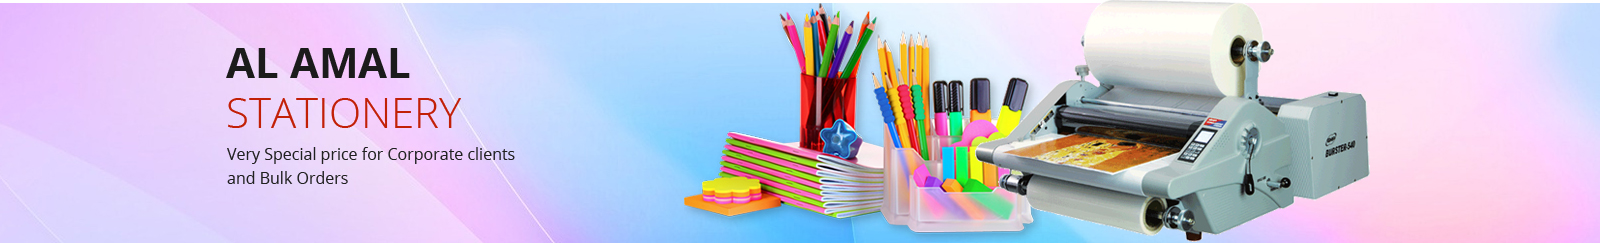 Office Supplies Online Dubai Abu Dhabi Uae Stationery Products Equipment